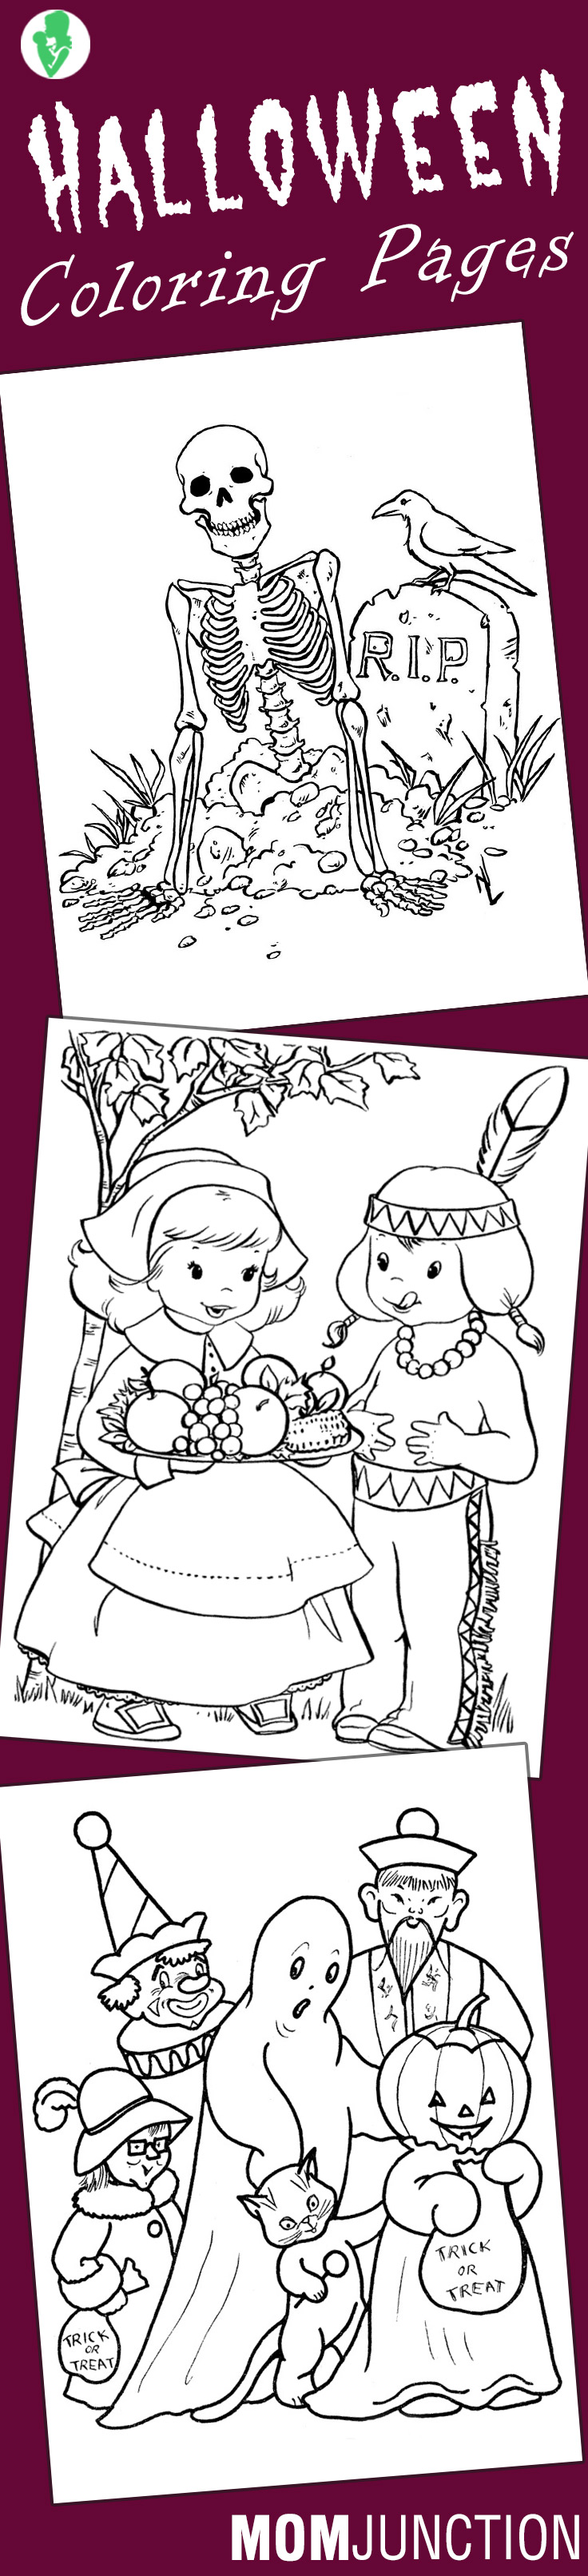 Halloween Coloring Pages Free Printables Momjunction Halloween Coloring Halloween Coloring Pages Coloring Pages